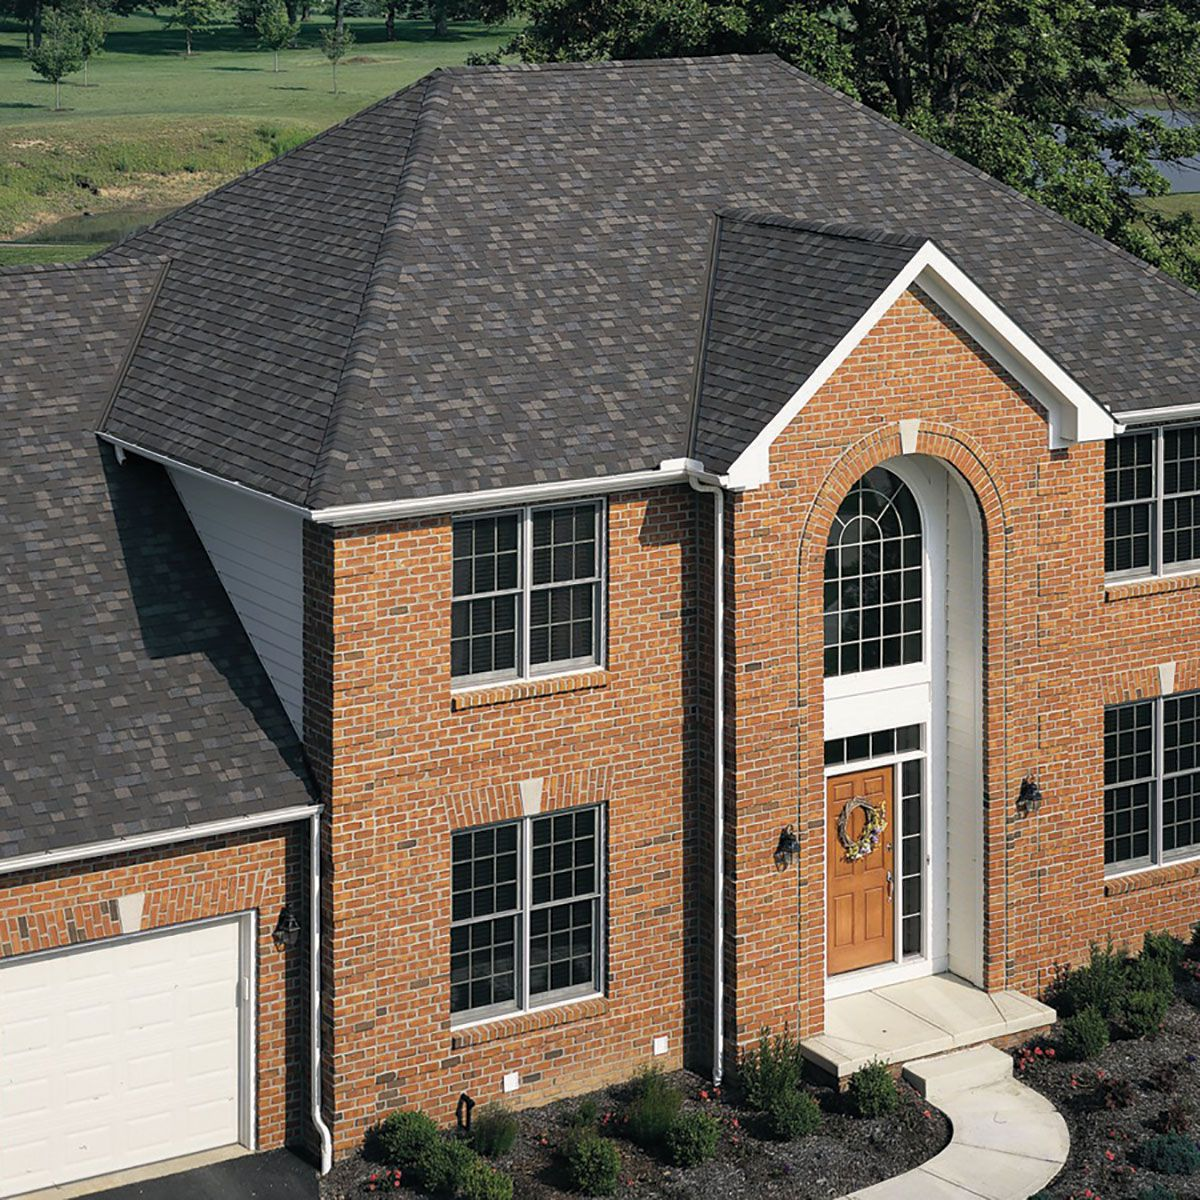 Landmark Pro Is Engineered To Outperform Ordinary Roofing